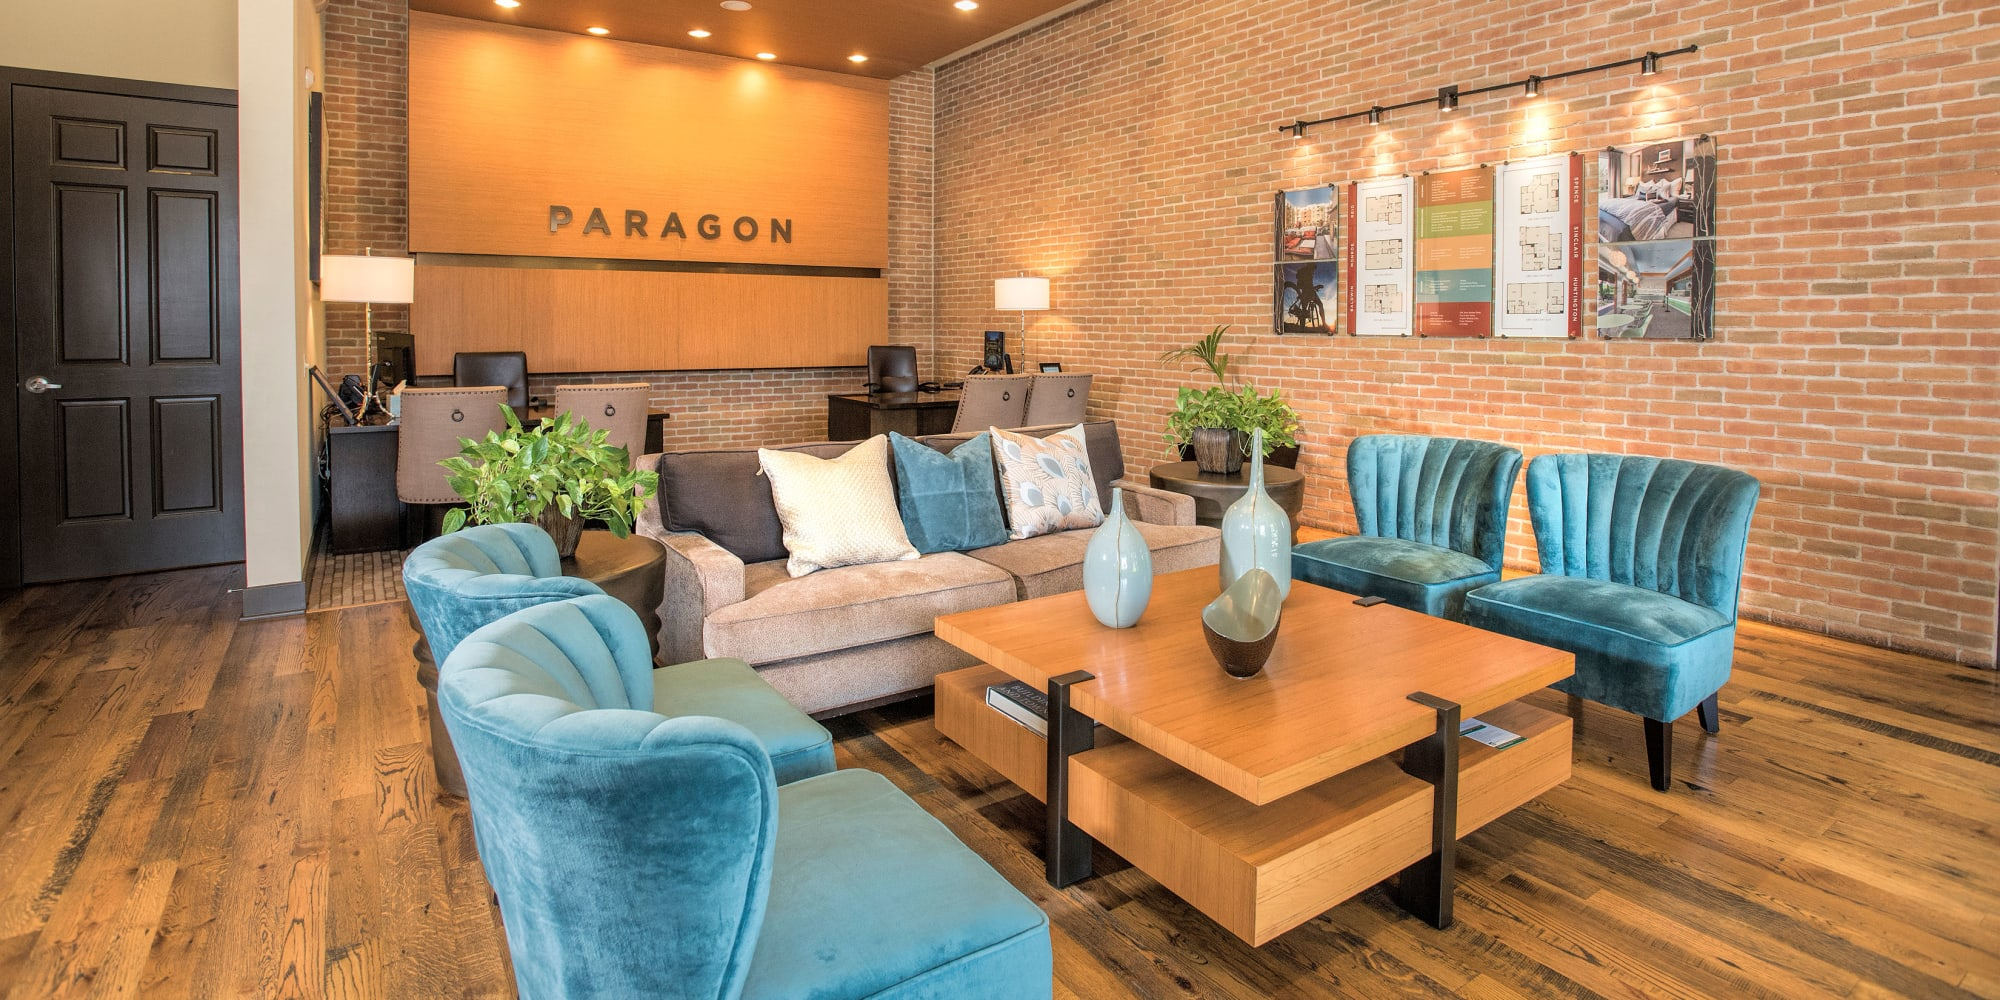 Paragon at Old Town apartments in Monrovia, California